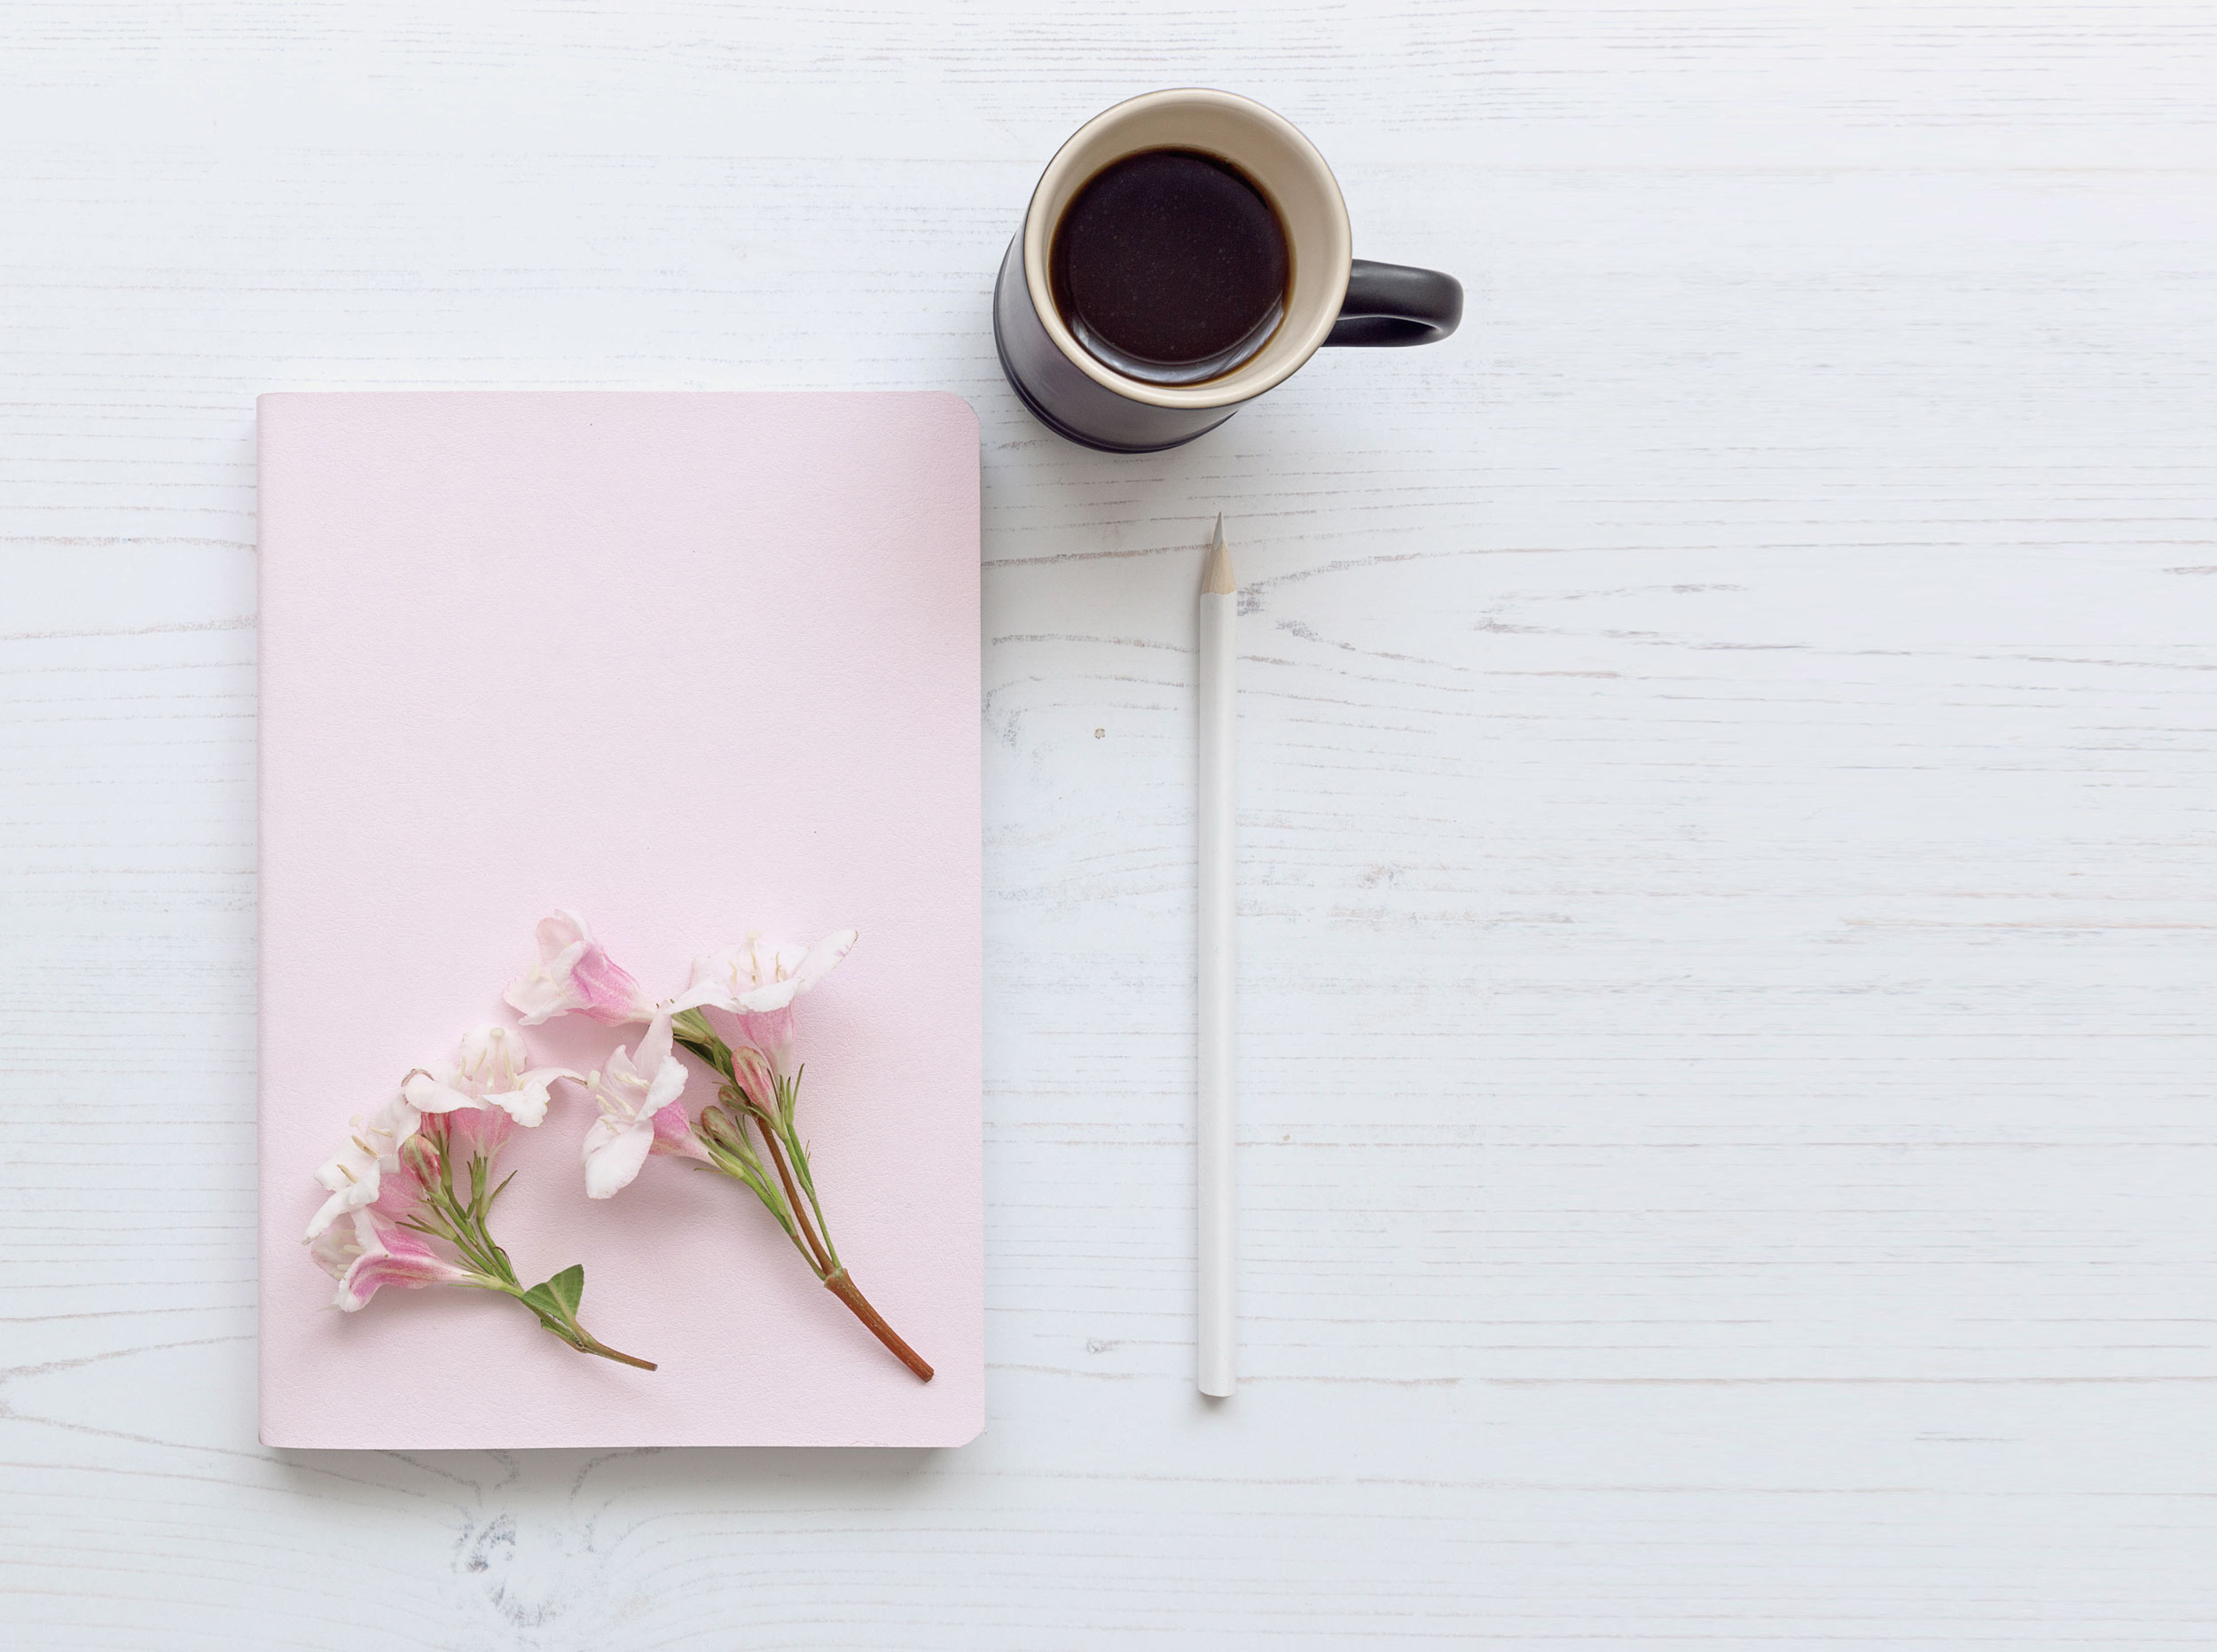 _Pink_Notebook_Coffee_Flatlay_4863_LouiseHowell.jpg